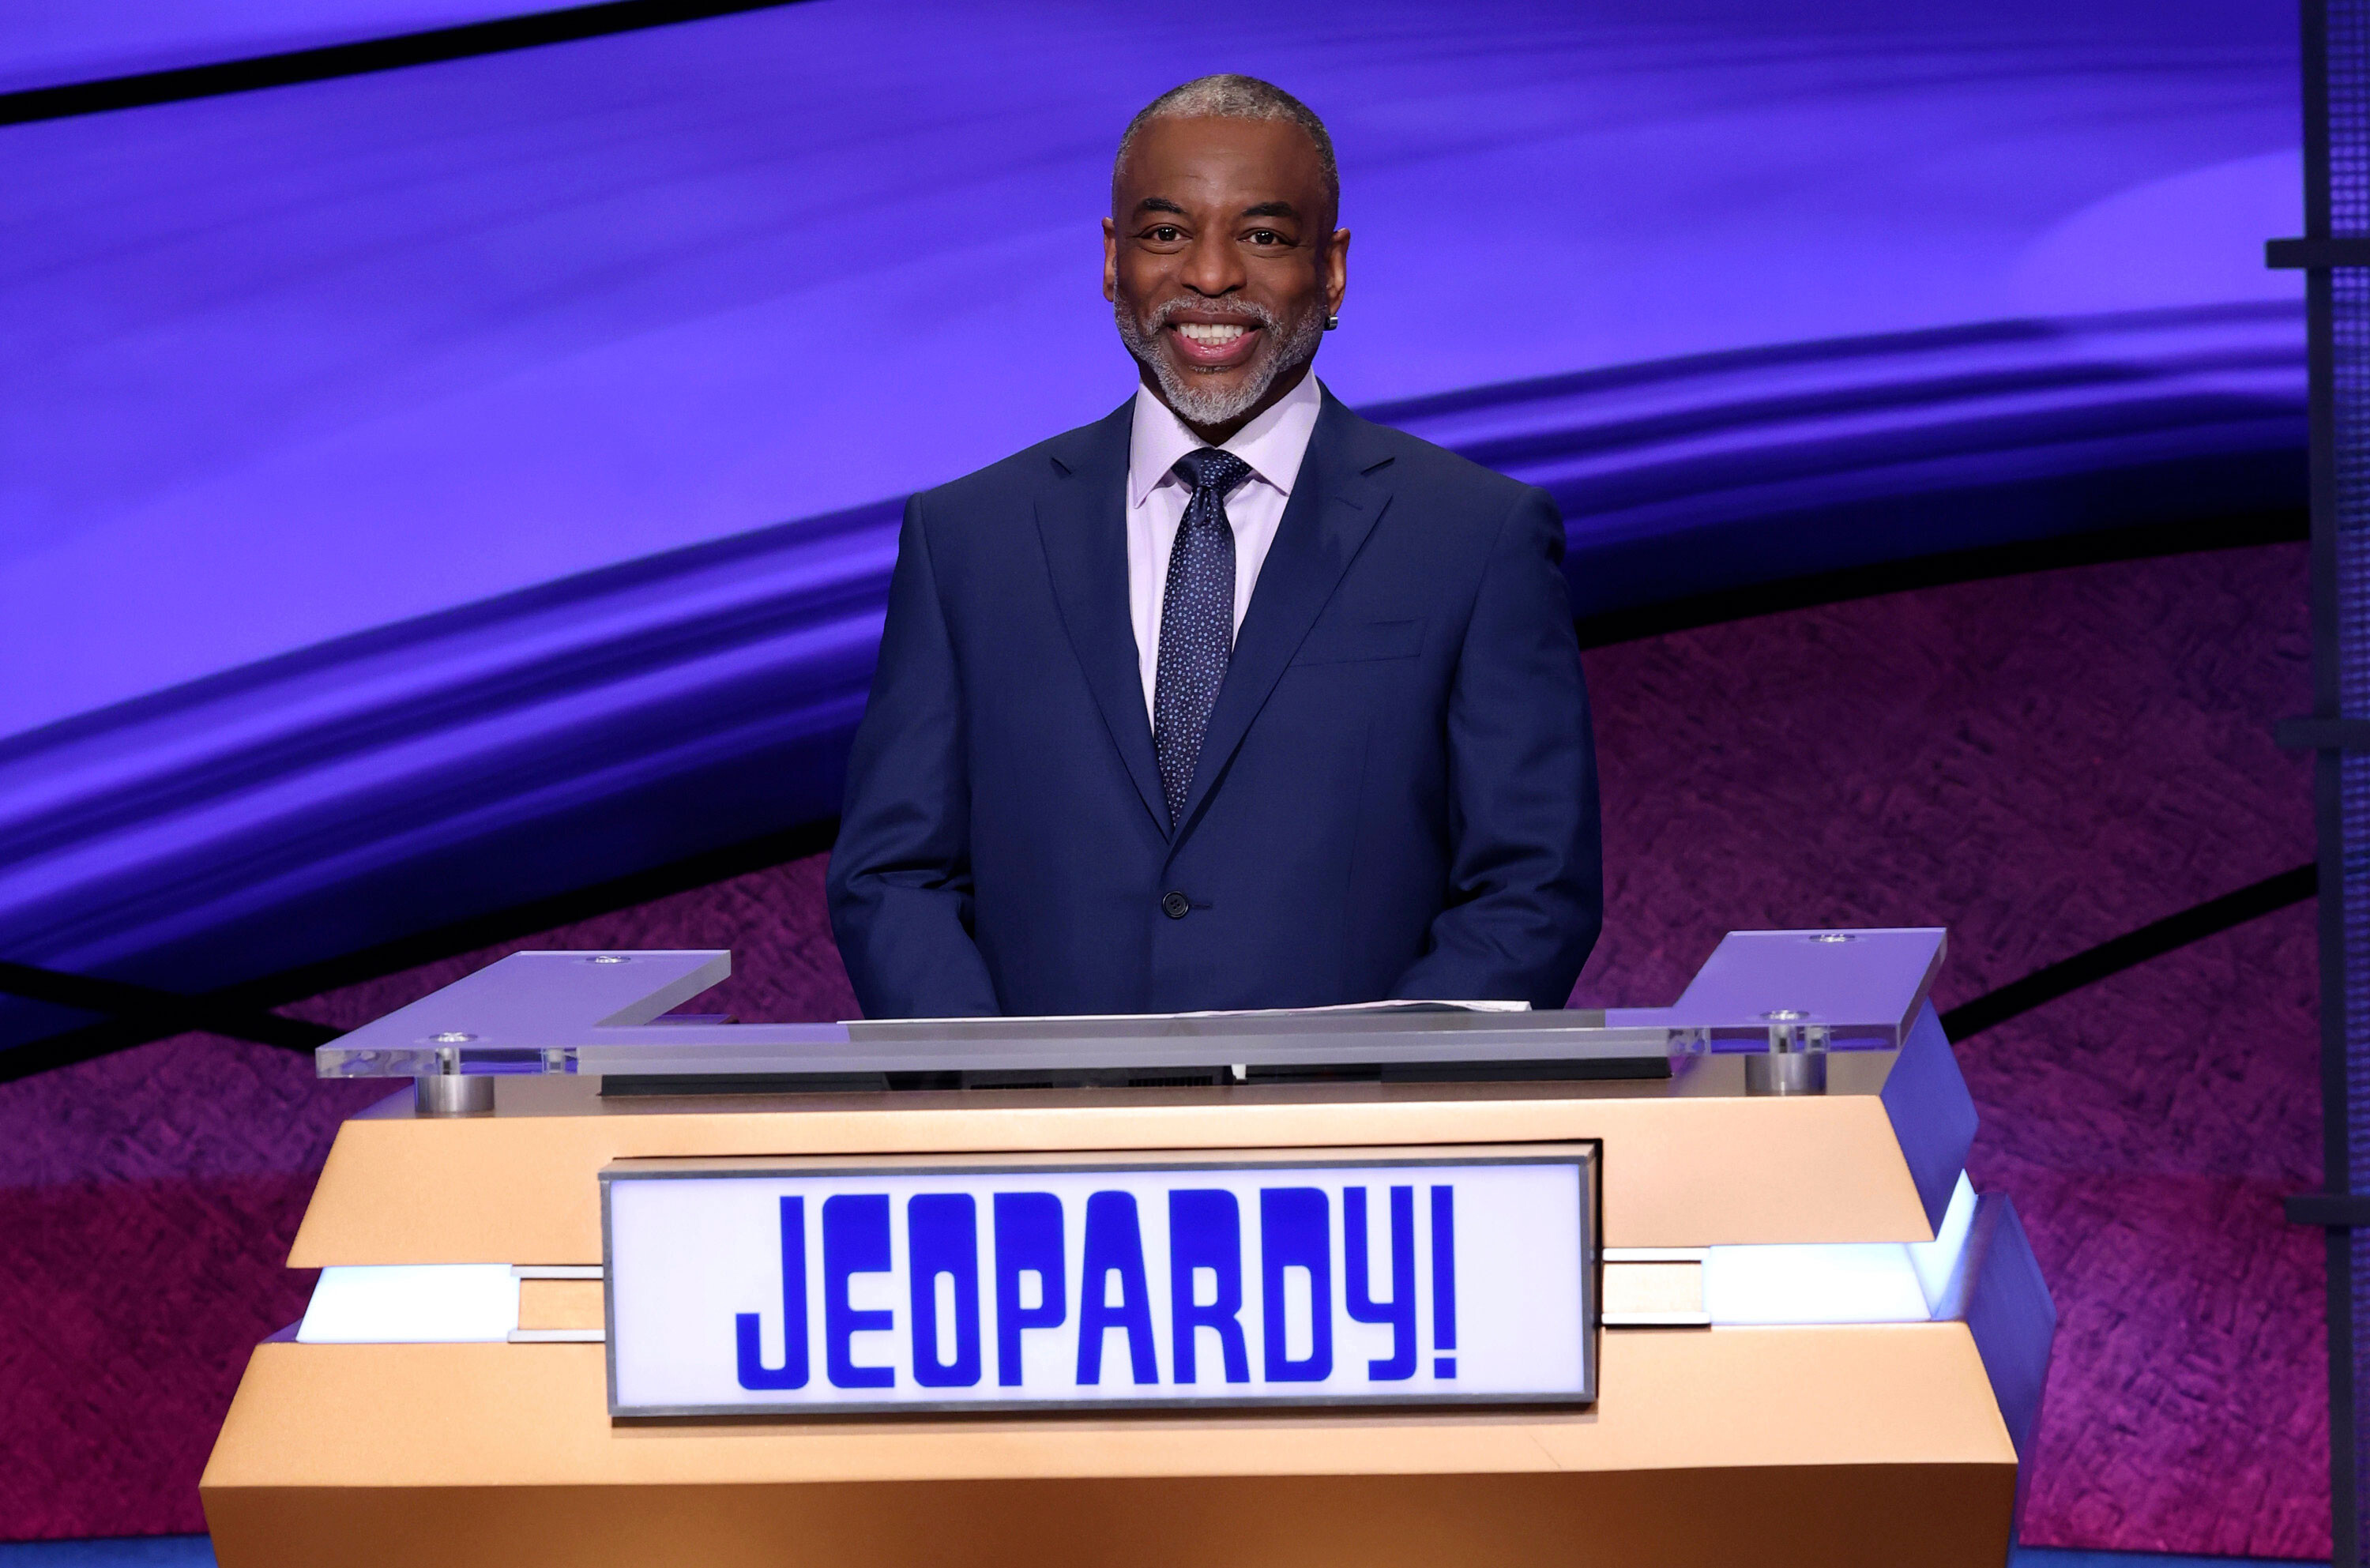 LeVar Burton makes his 'Jeopardy!' guest host debut on Monday